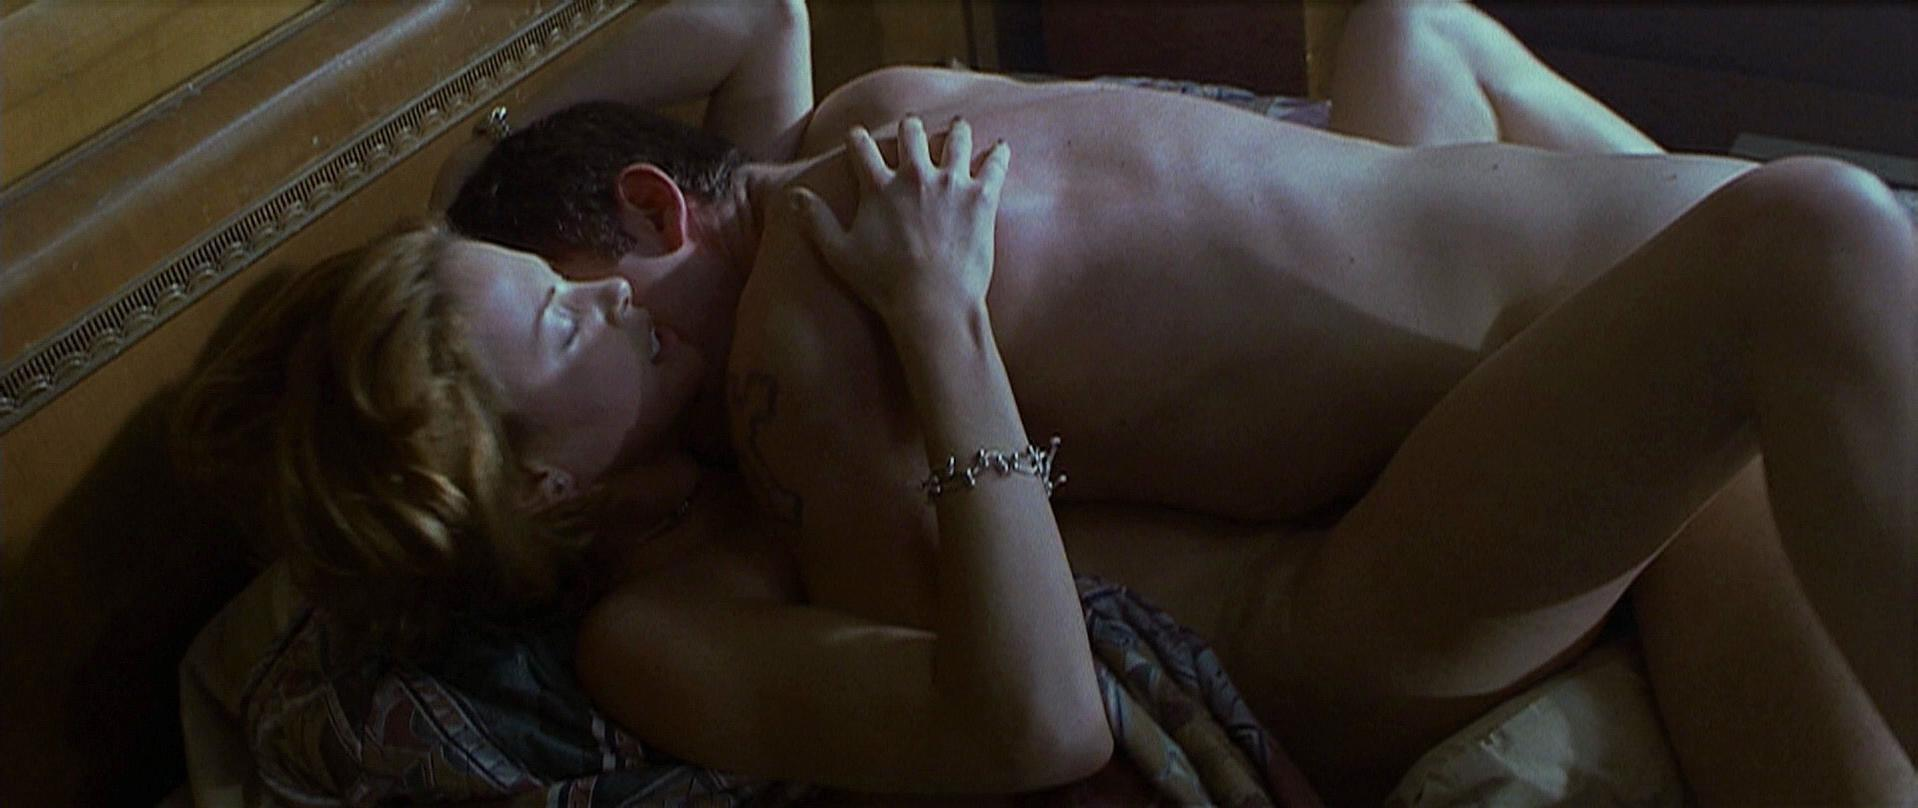 charlize theron hot scene